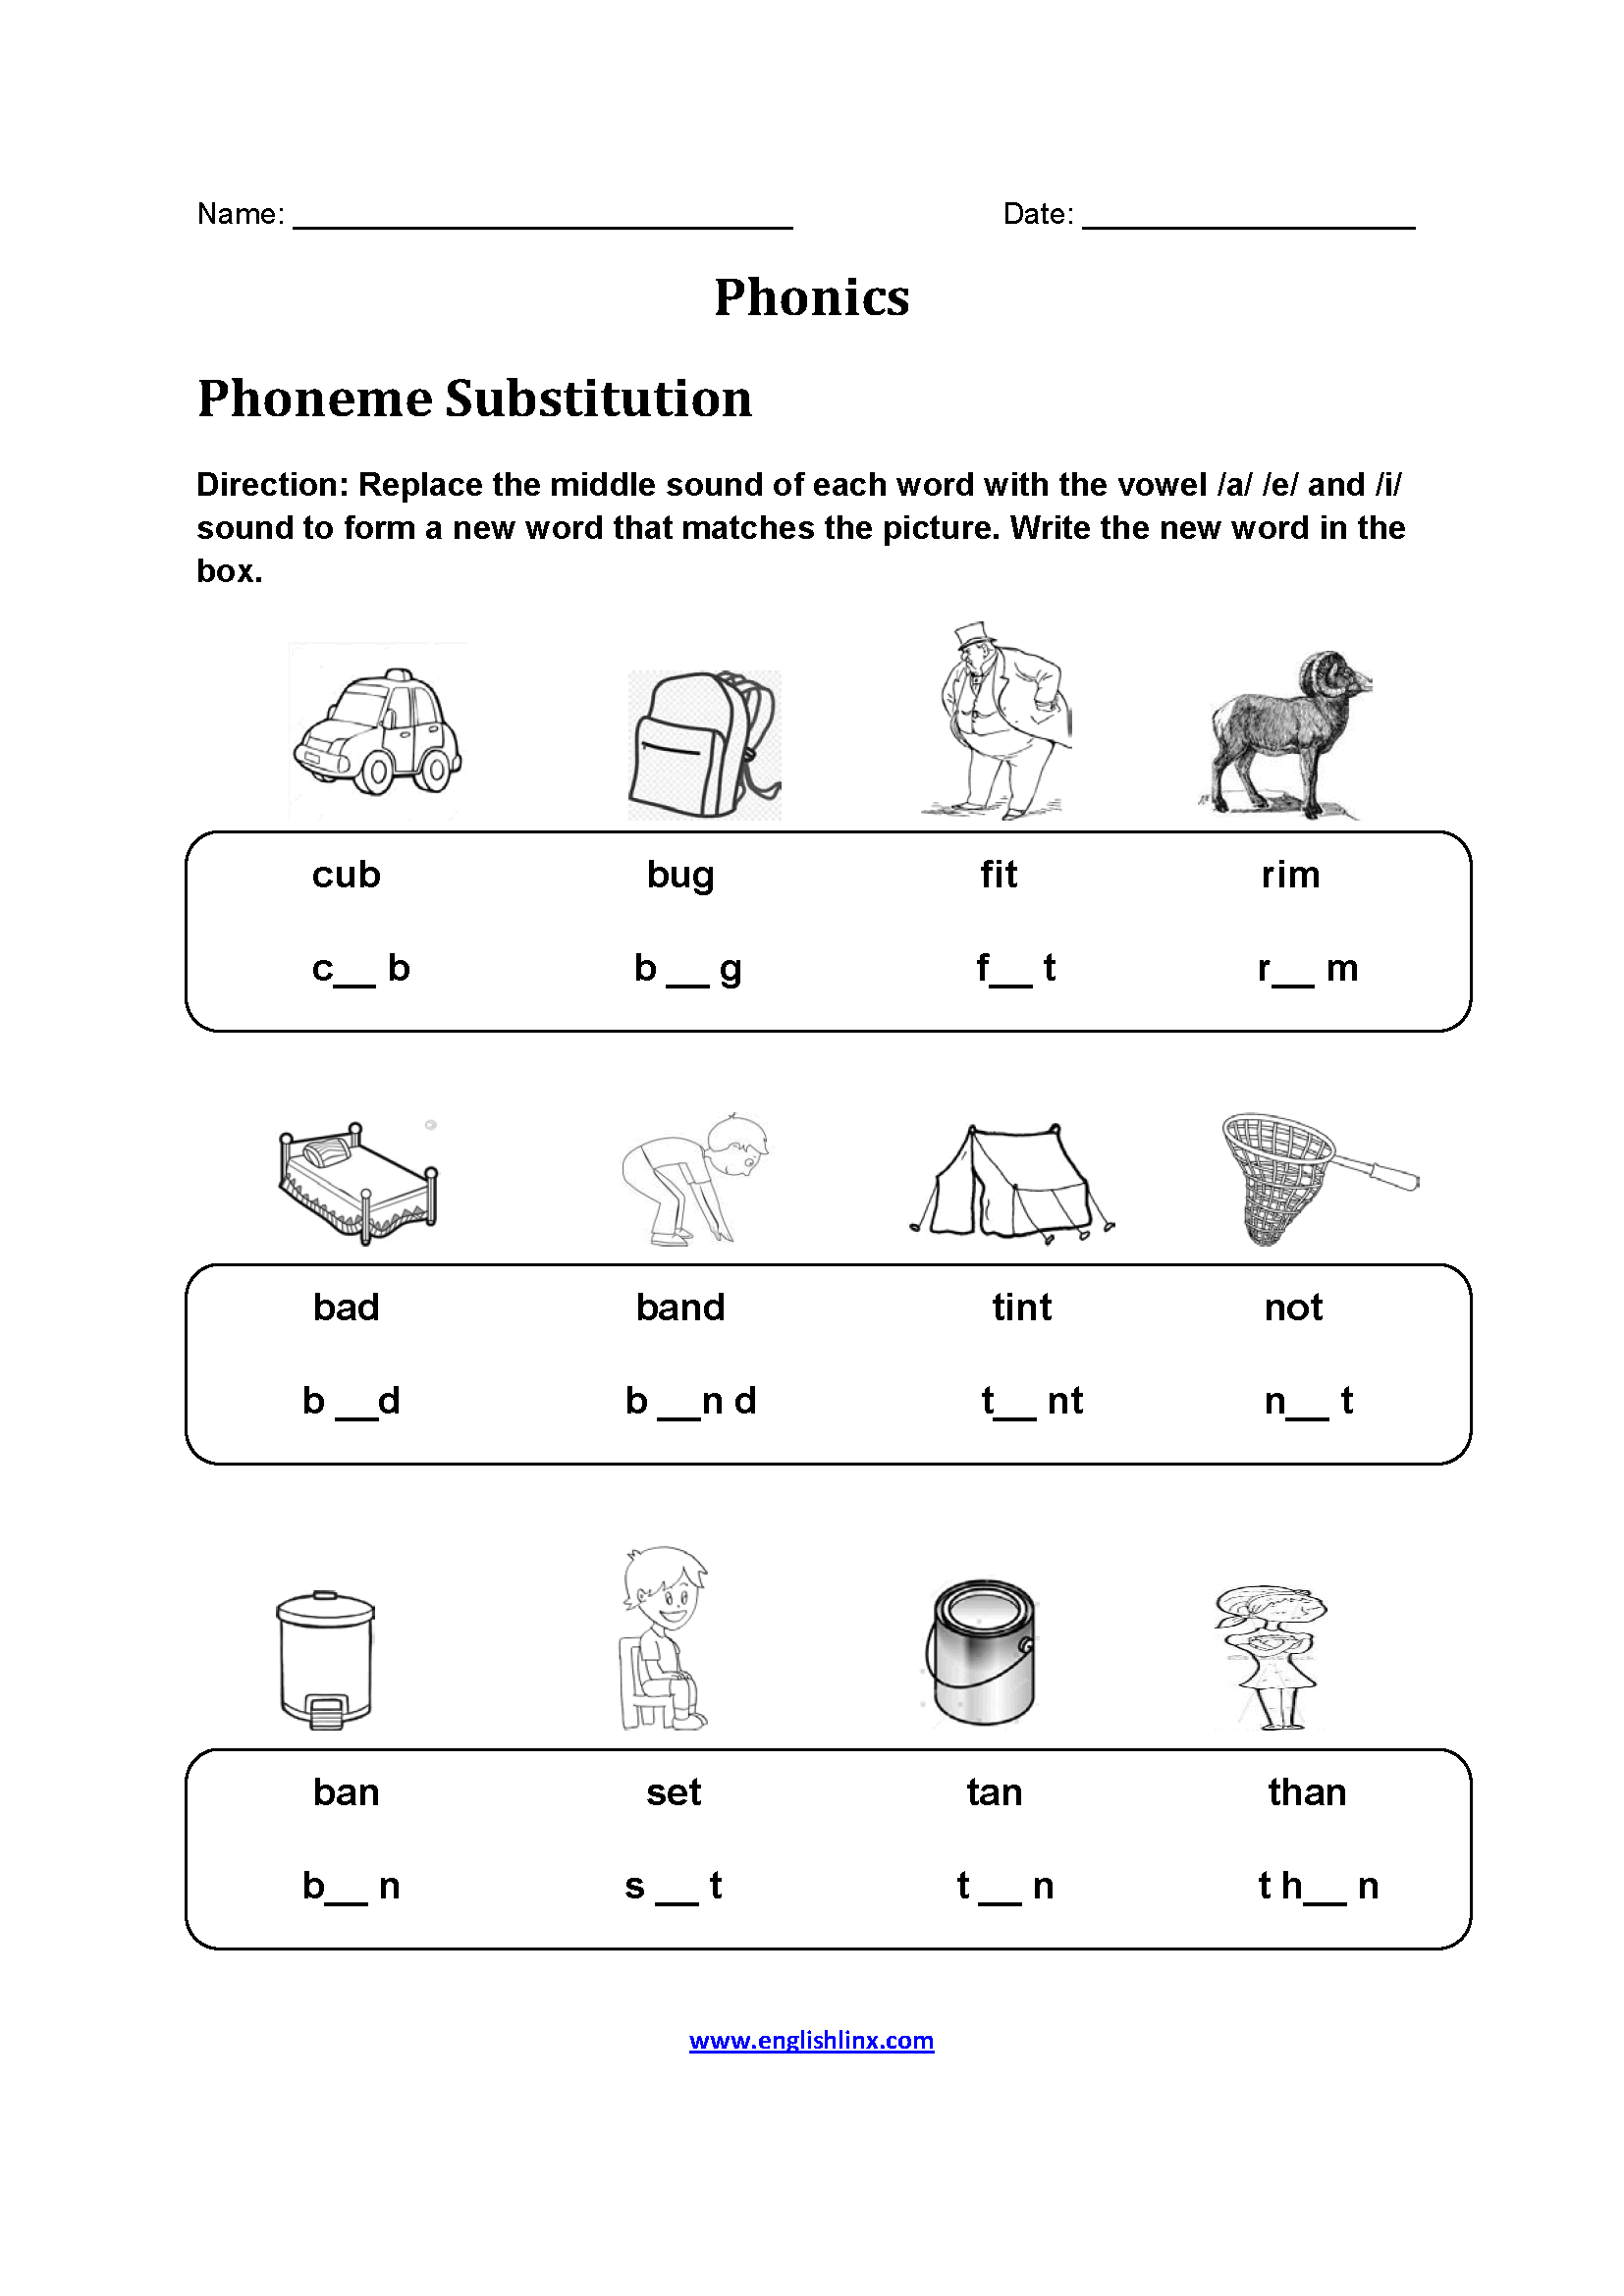 Phoneme Substitution Phonics Worksheet furthermore Answer Lowercase Alphabet Writing Practice G further Bubble Letter N in addition Cursive H in addition Cursive N. on worksheets letter o